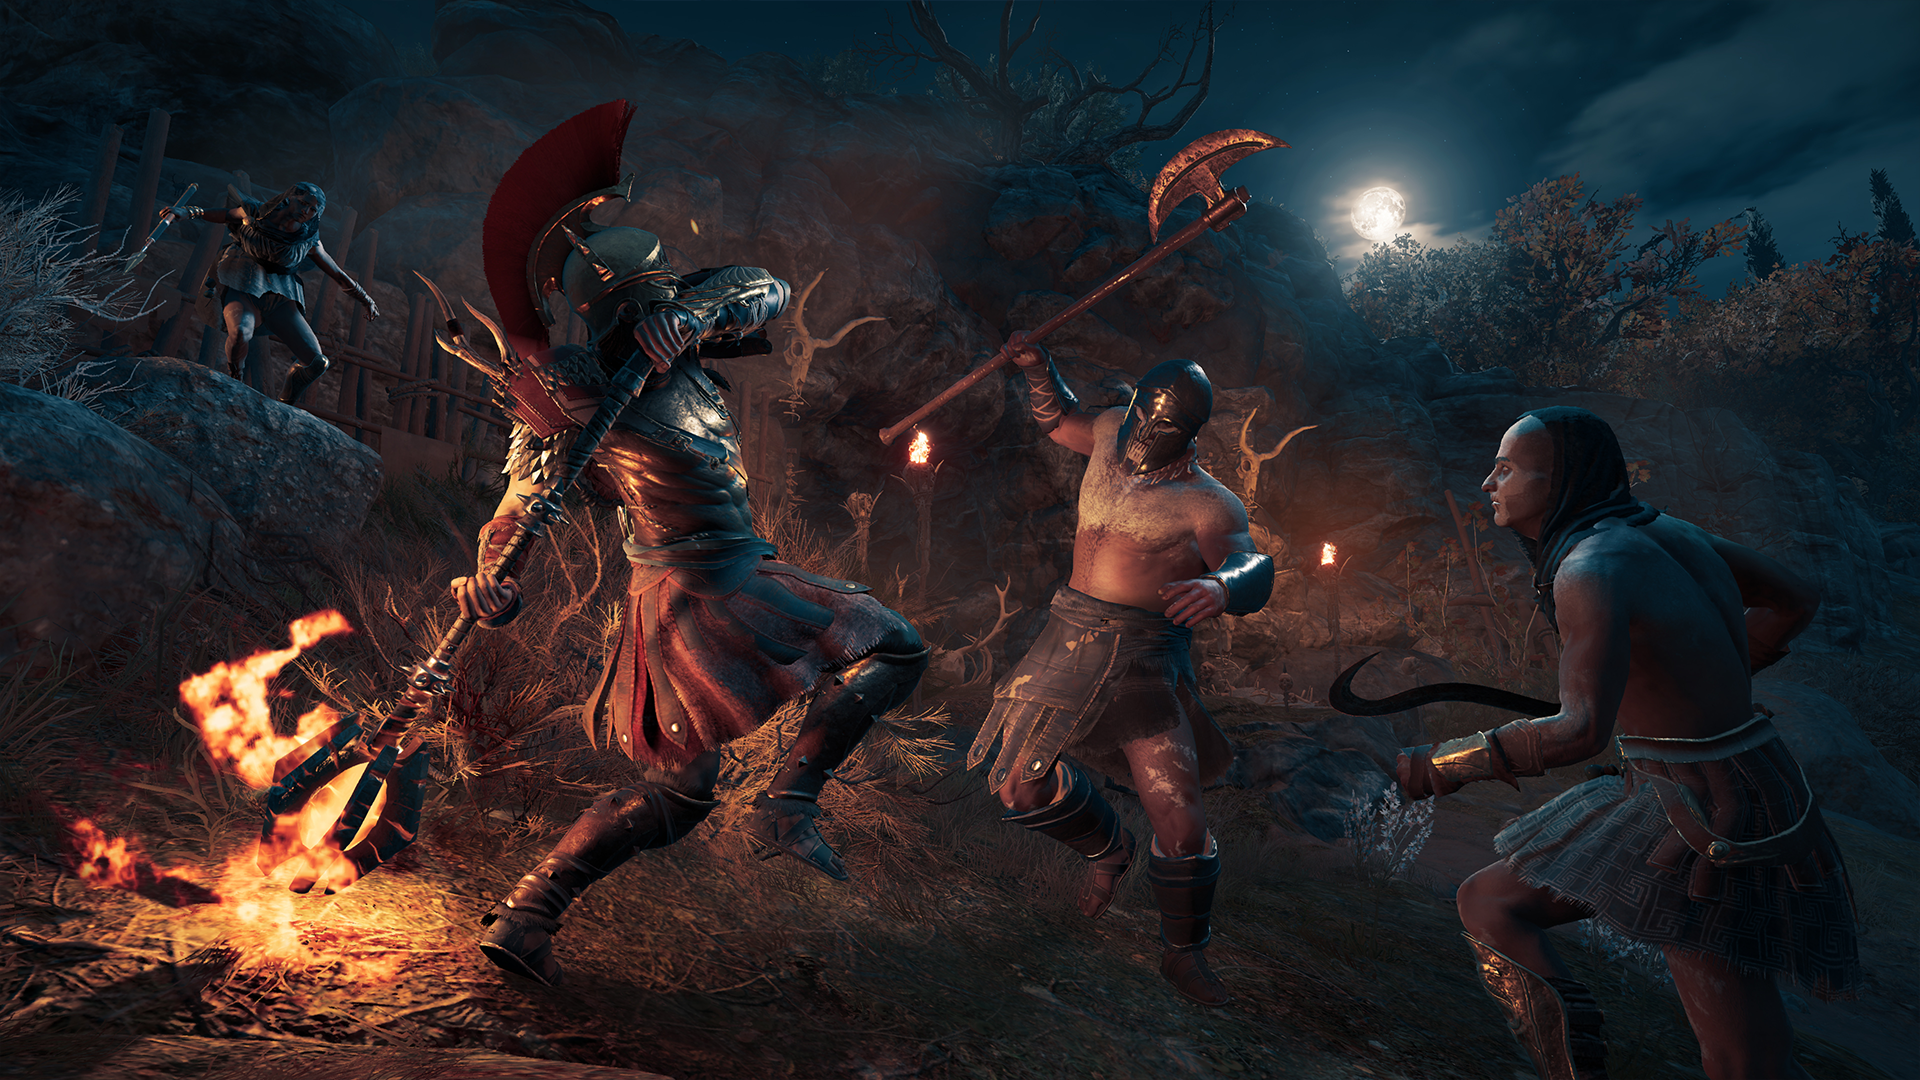 Stop worrying about Assassin's Creed Odyssey's length: its